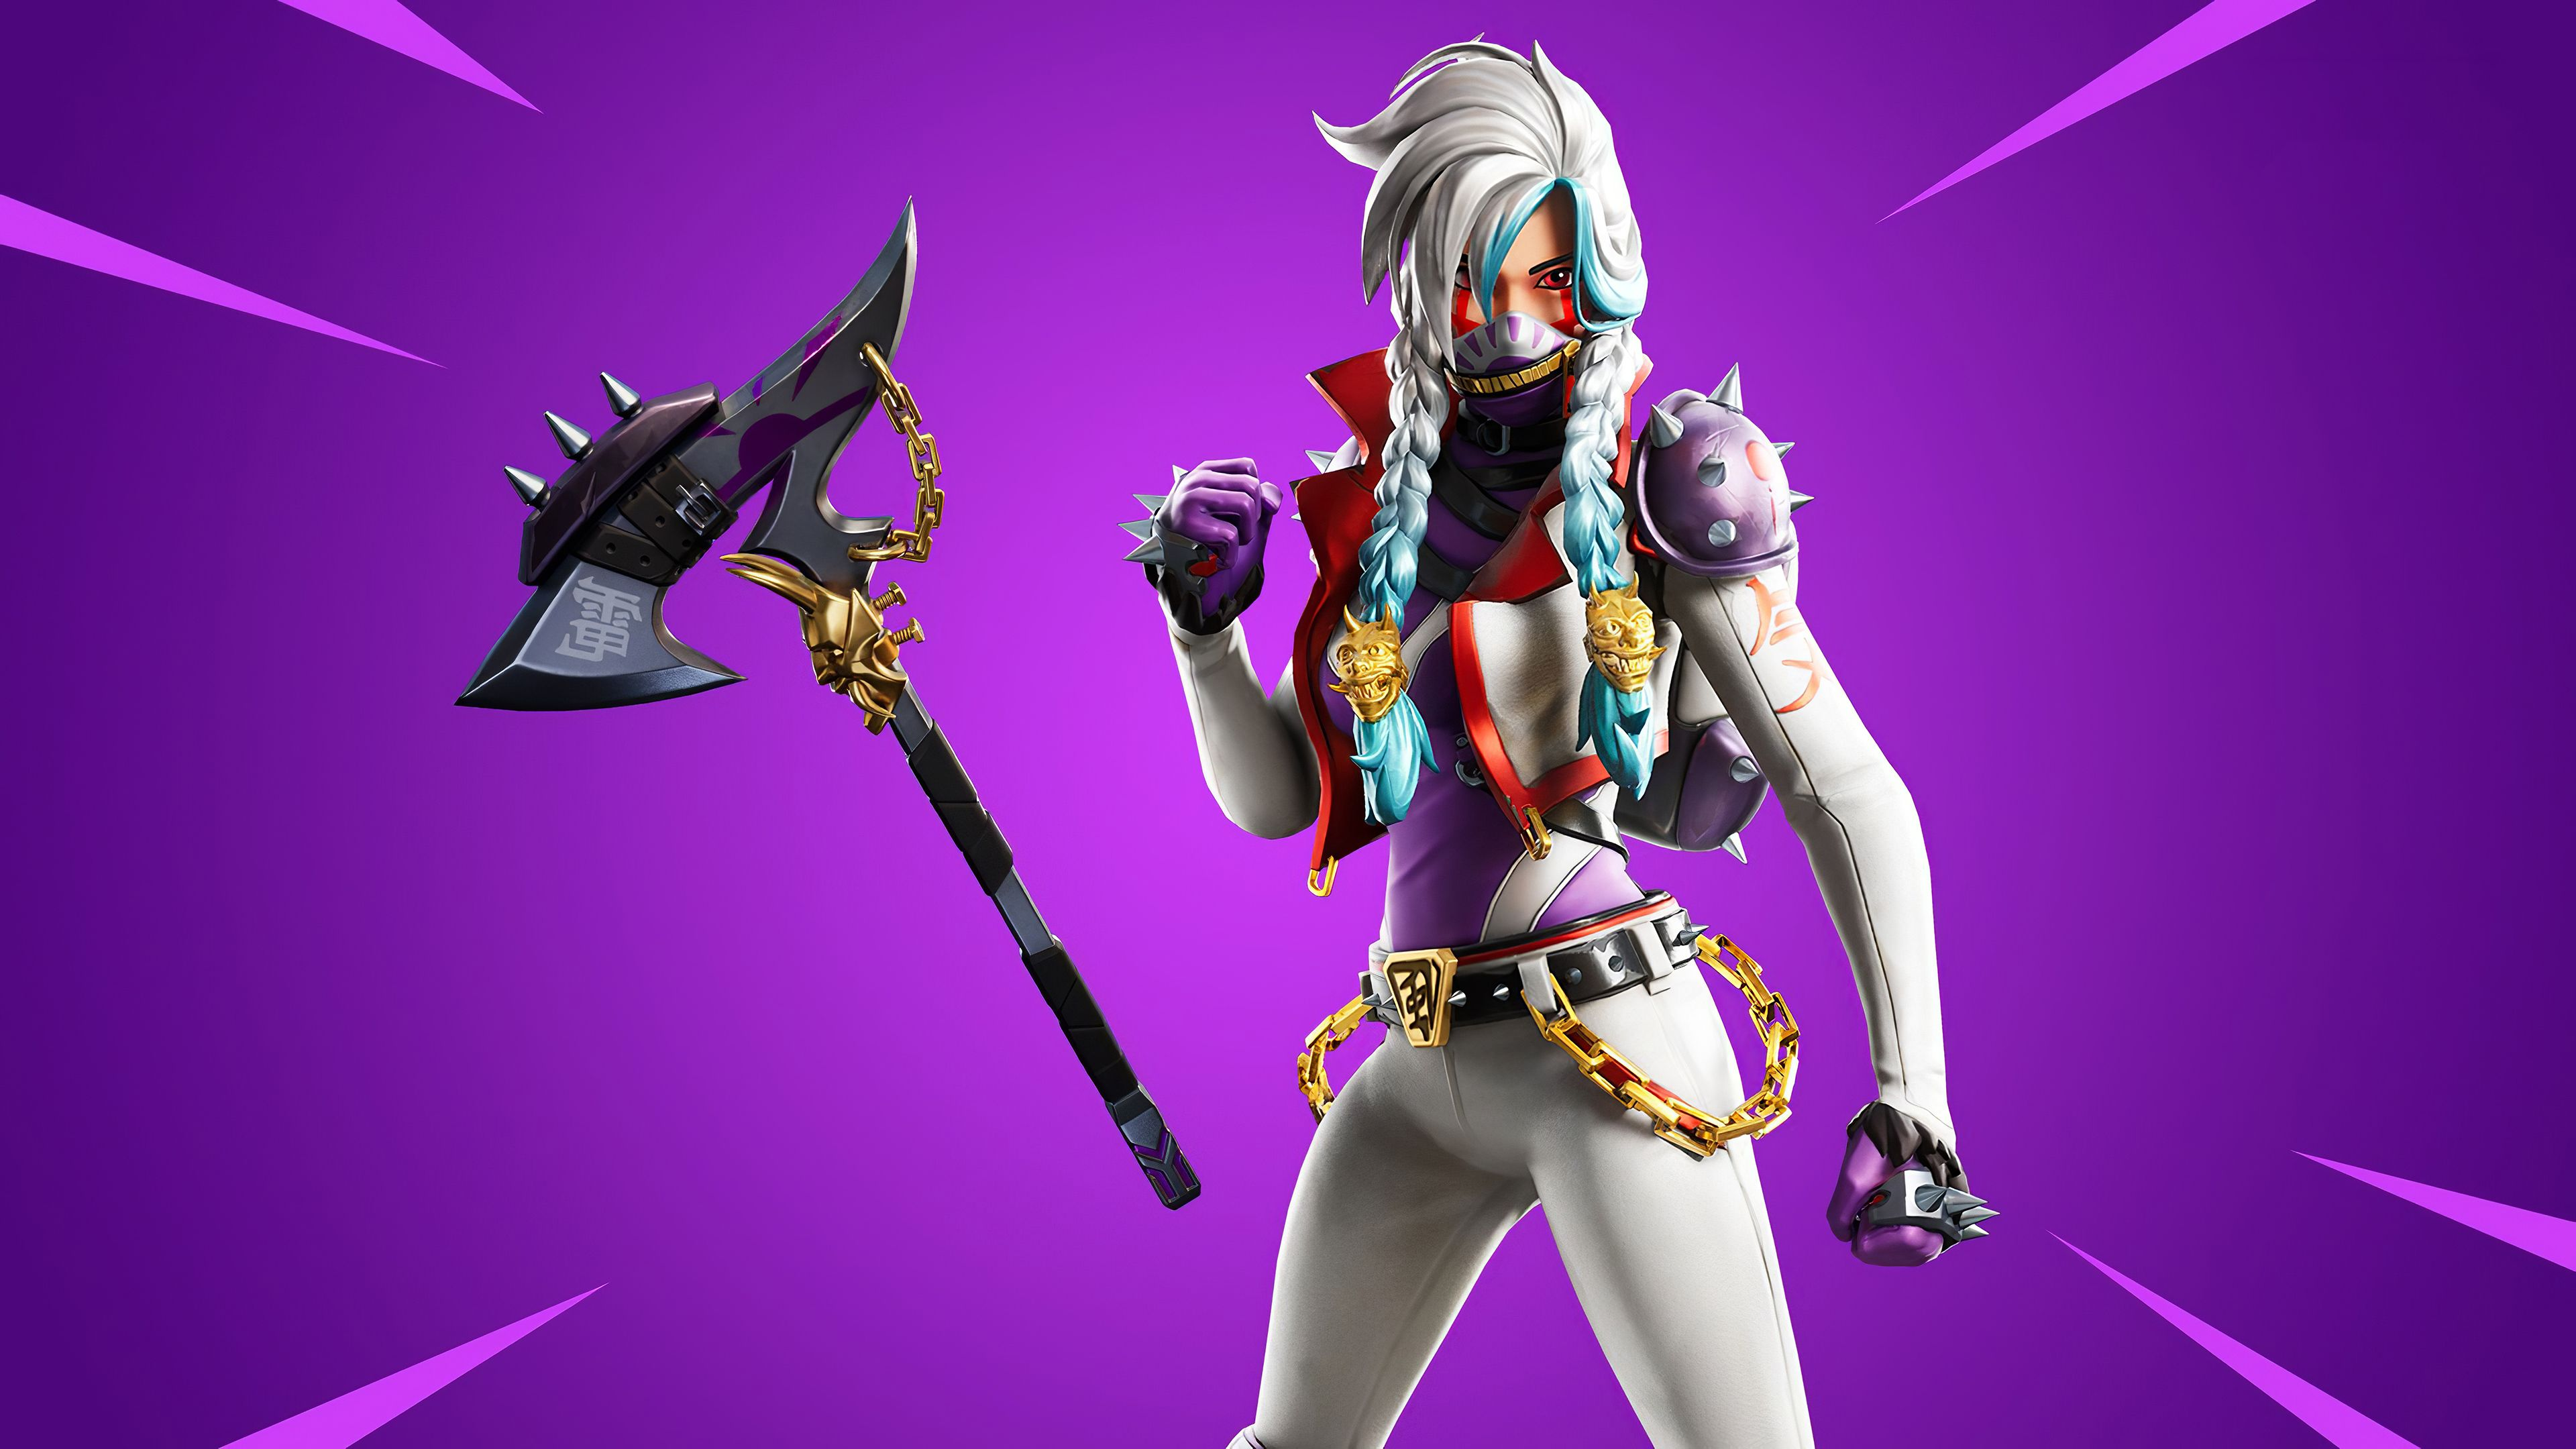 Chained Cleaver Pickaxe Fortnite Chapter 2 Hd Wallpapers Games Wallpapers Fortnite Wallpapers Fortnite Chapter 2 Wallpa Fortnite Epic Games Fortnite Chapter